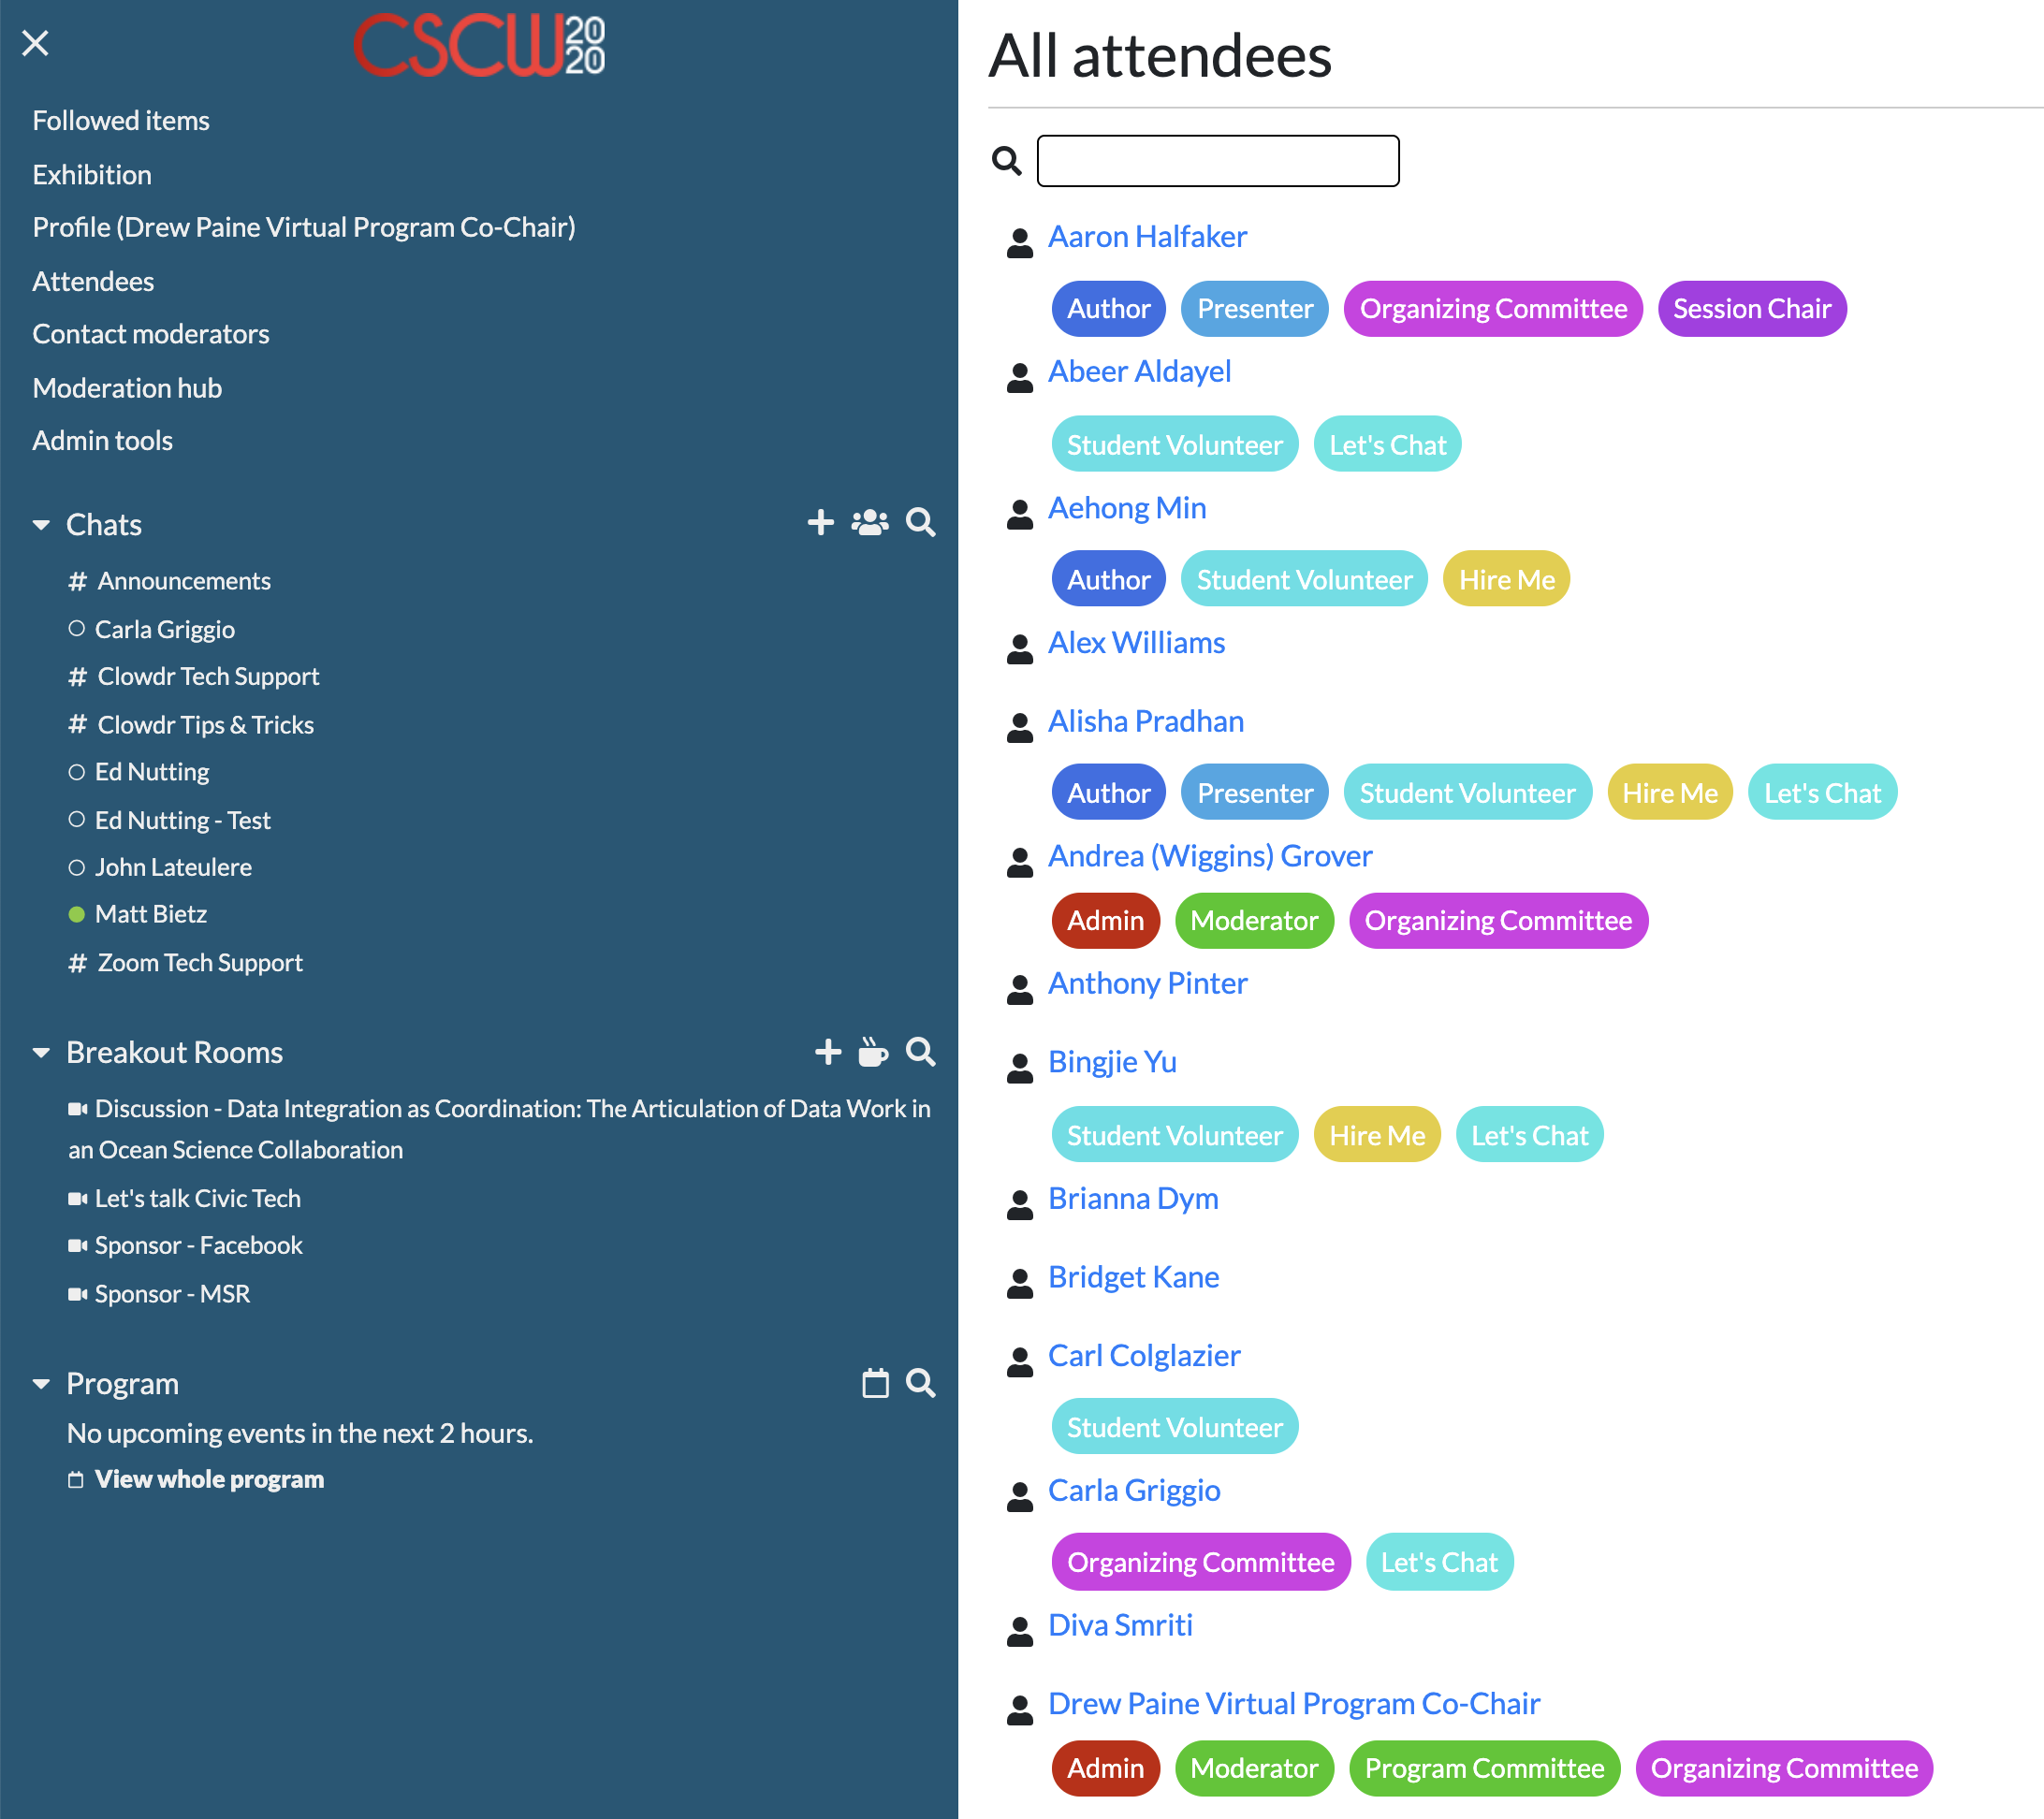 CSCW2020 participants can view all registered attendees, and see each person's profile badges, to easily socialize.